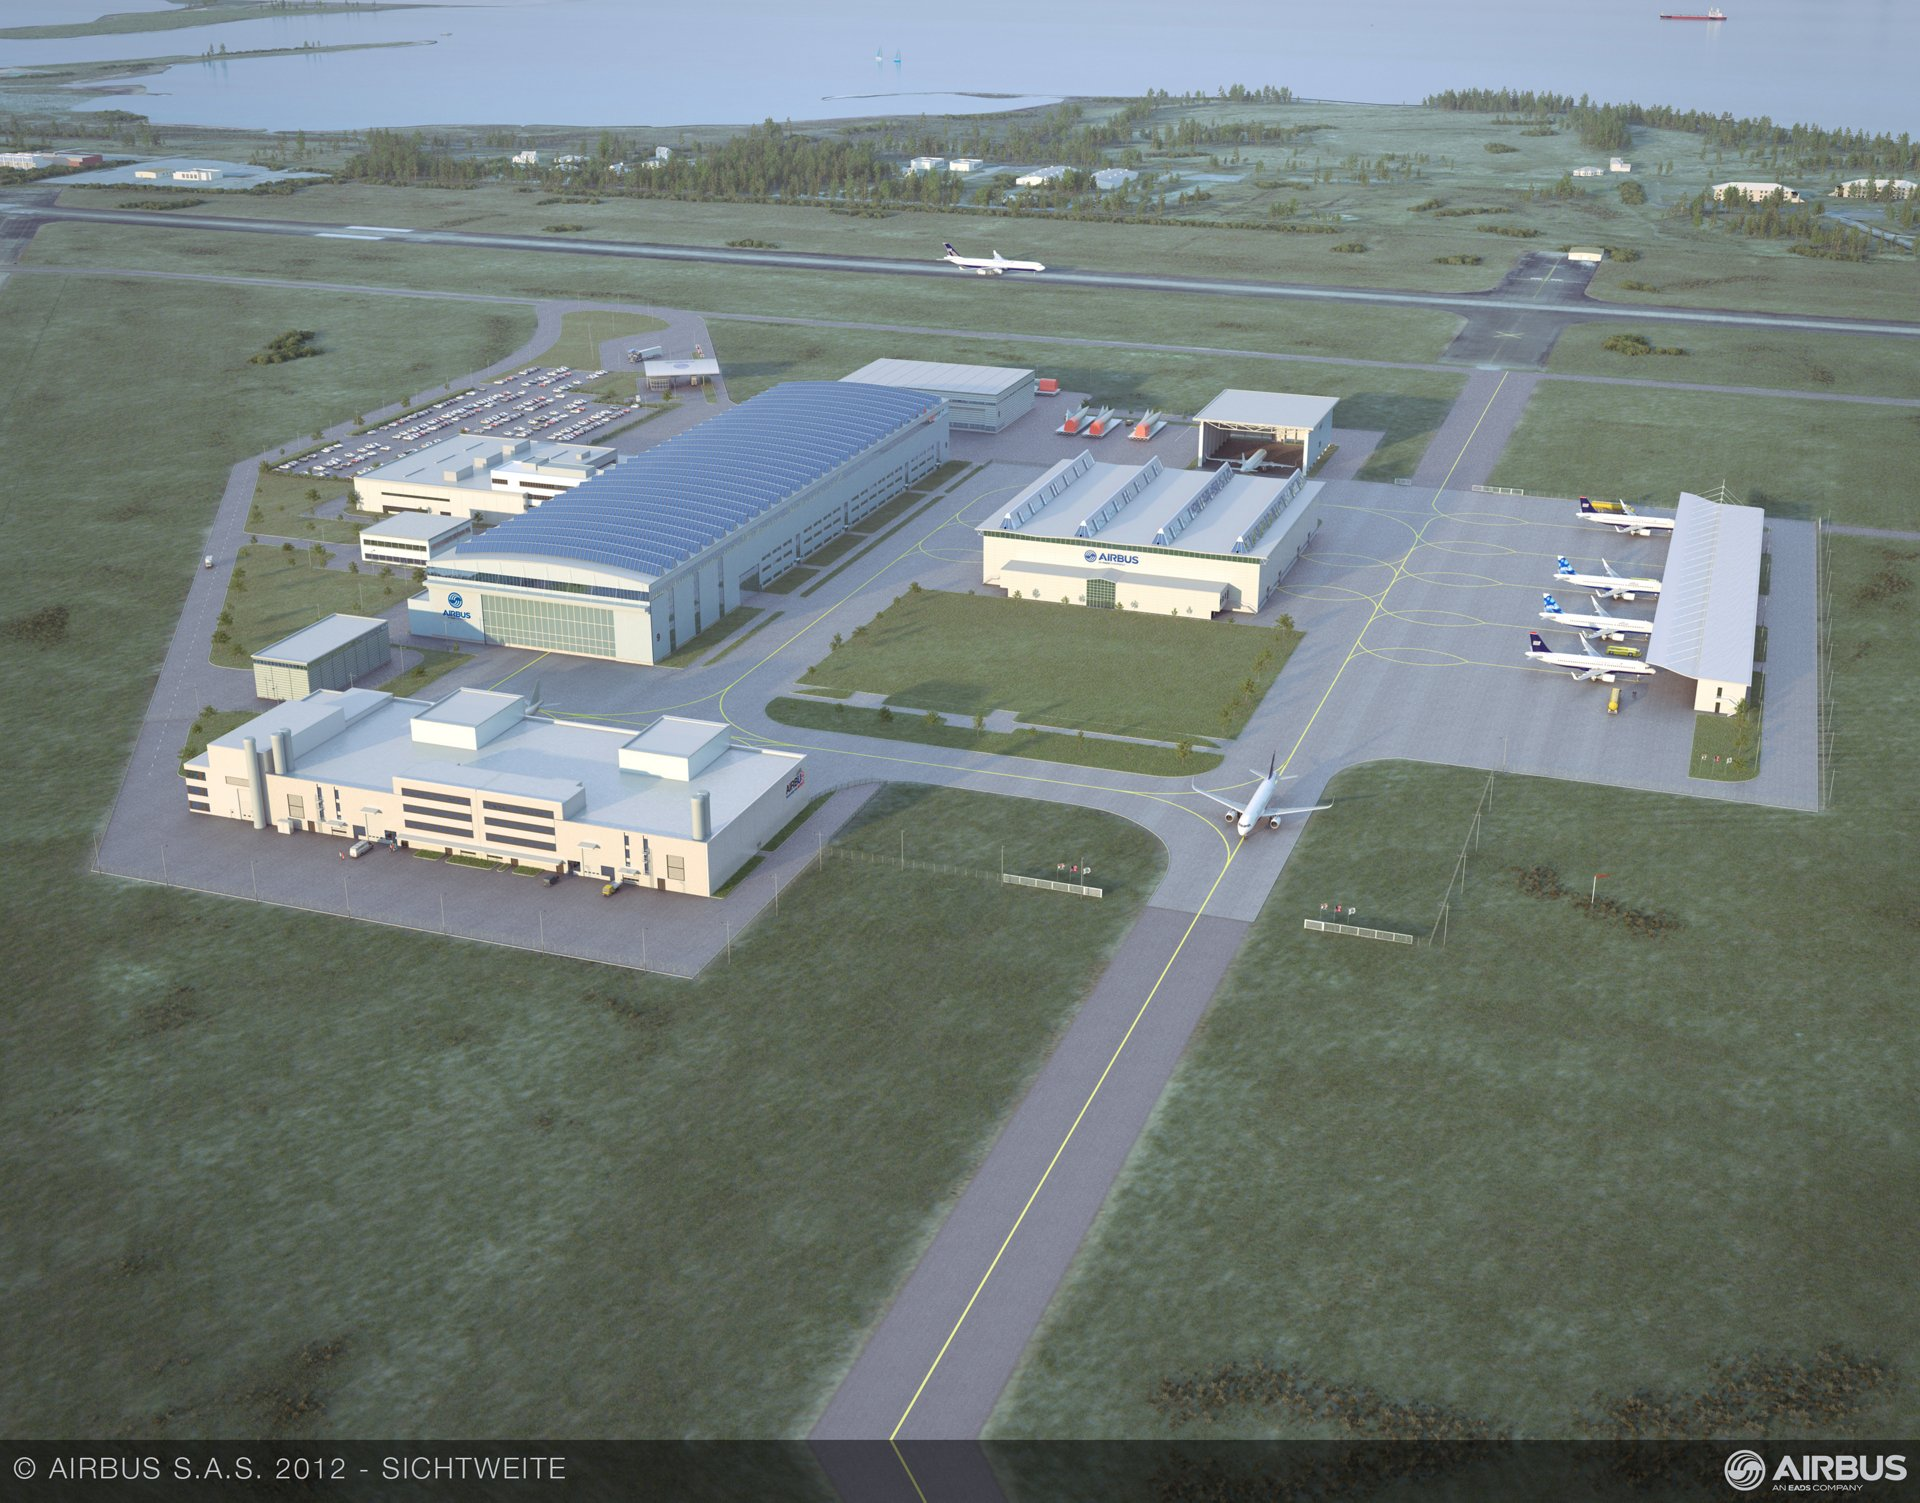 Airbus' first U.S.-based production facility – which will build A320 Family jetliners at the Brookley Aeroplex in Mobile, Alabama, beginning in 2015 – will produce between 40 and 50 aircraft annually by 2018